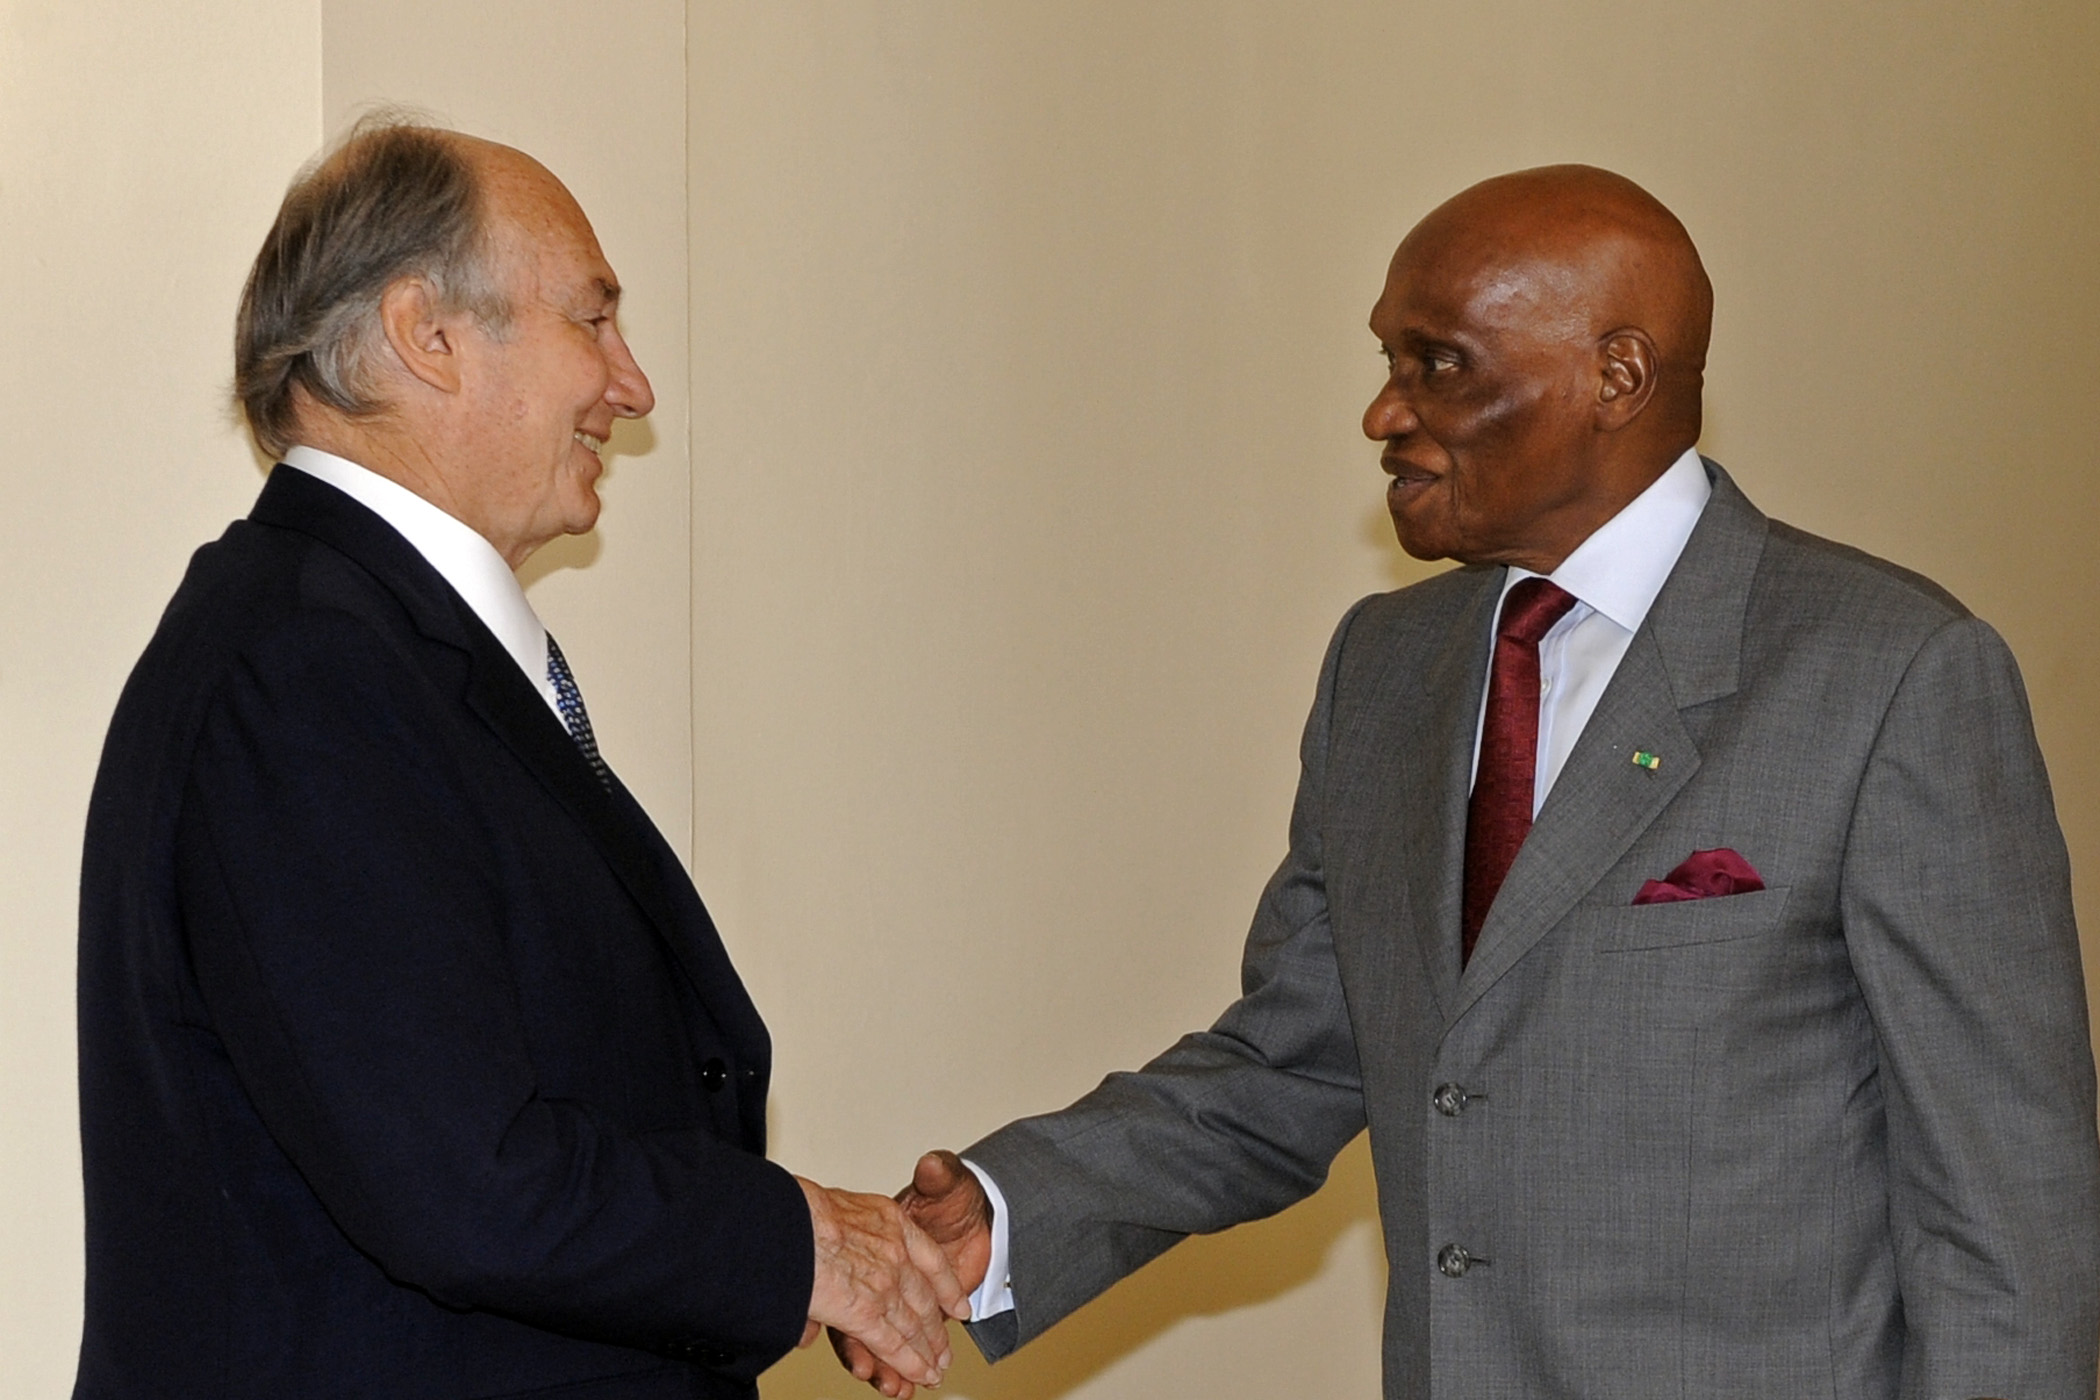 Mawlana Hazar Imam is greeted by His Excellency President Abdoulaye Wade of Senegal. Photo: Gary Otte